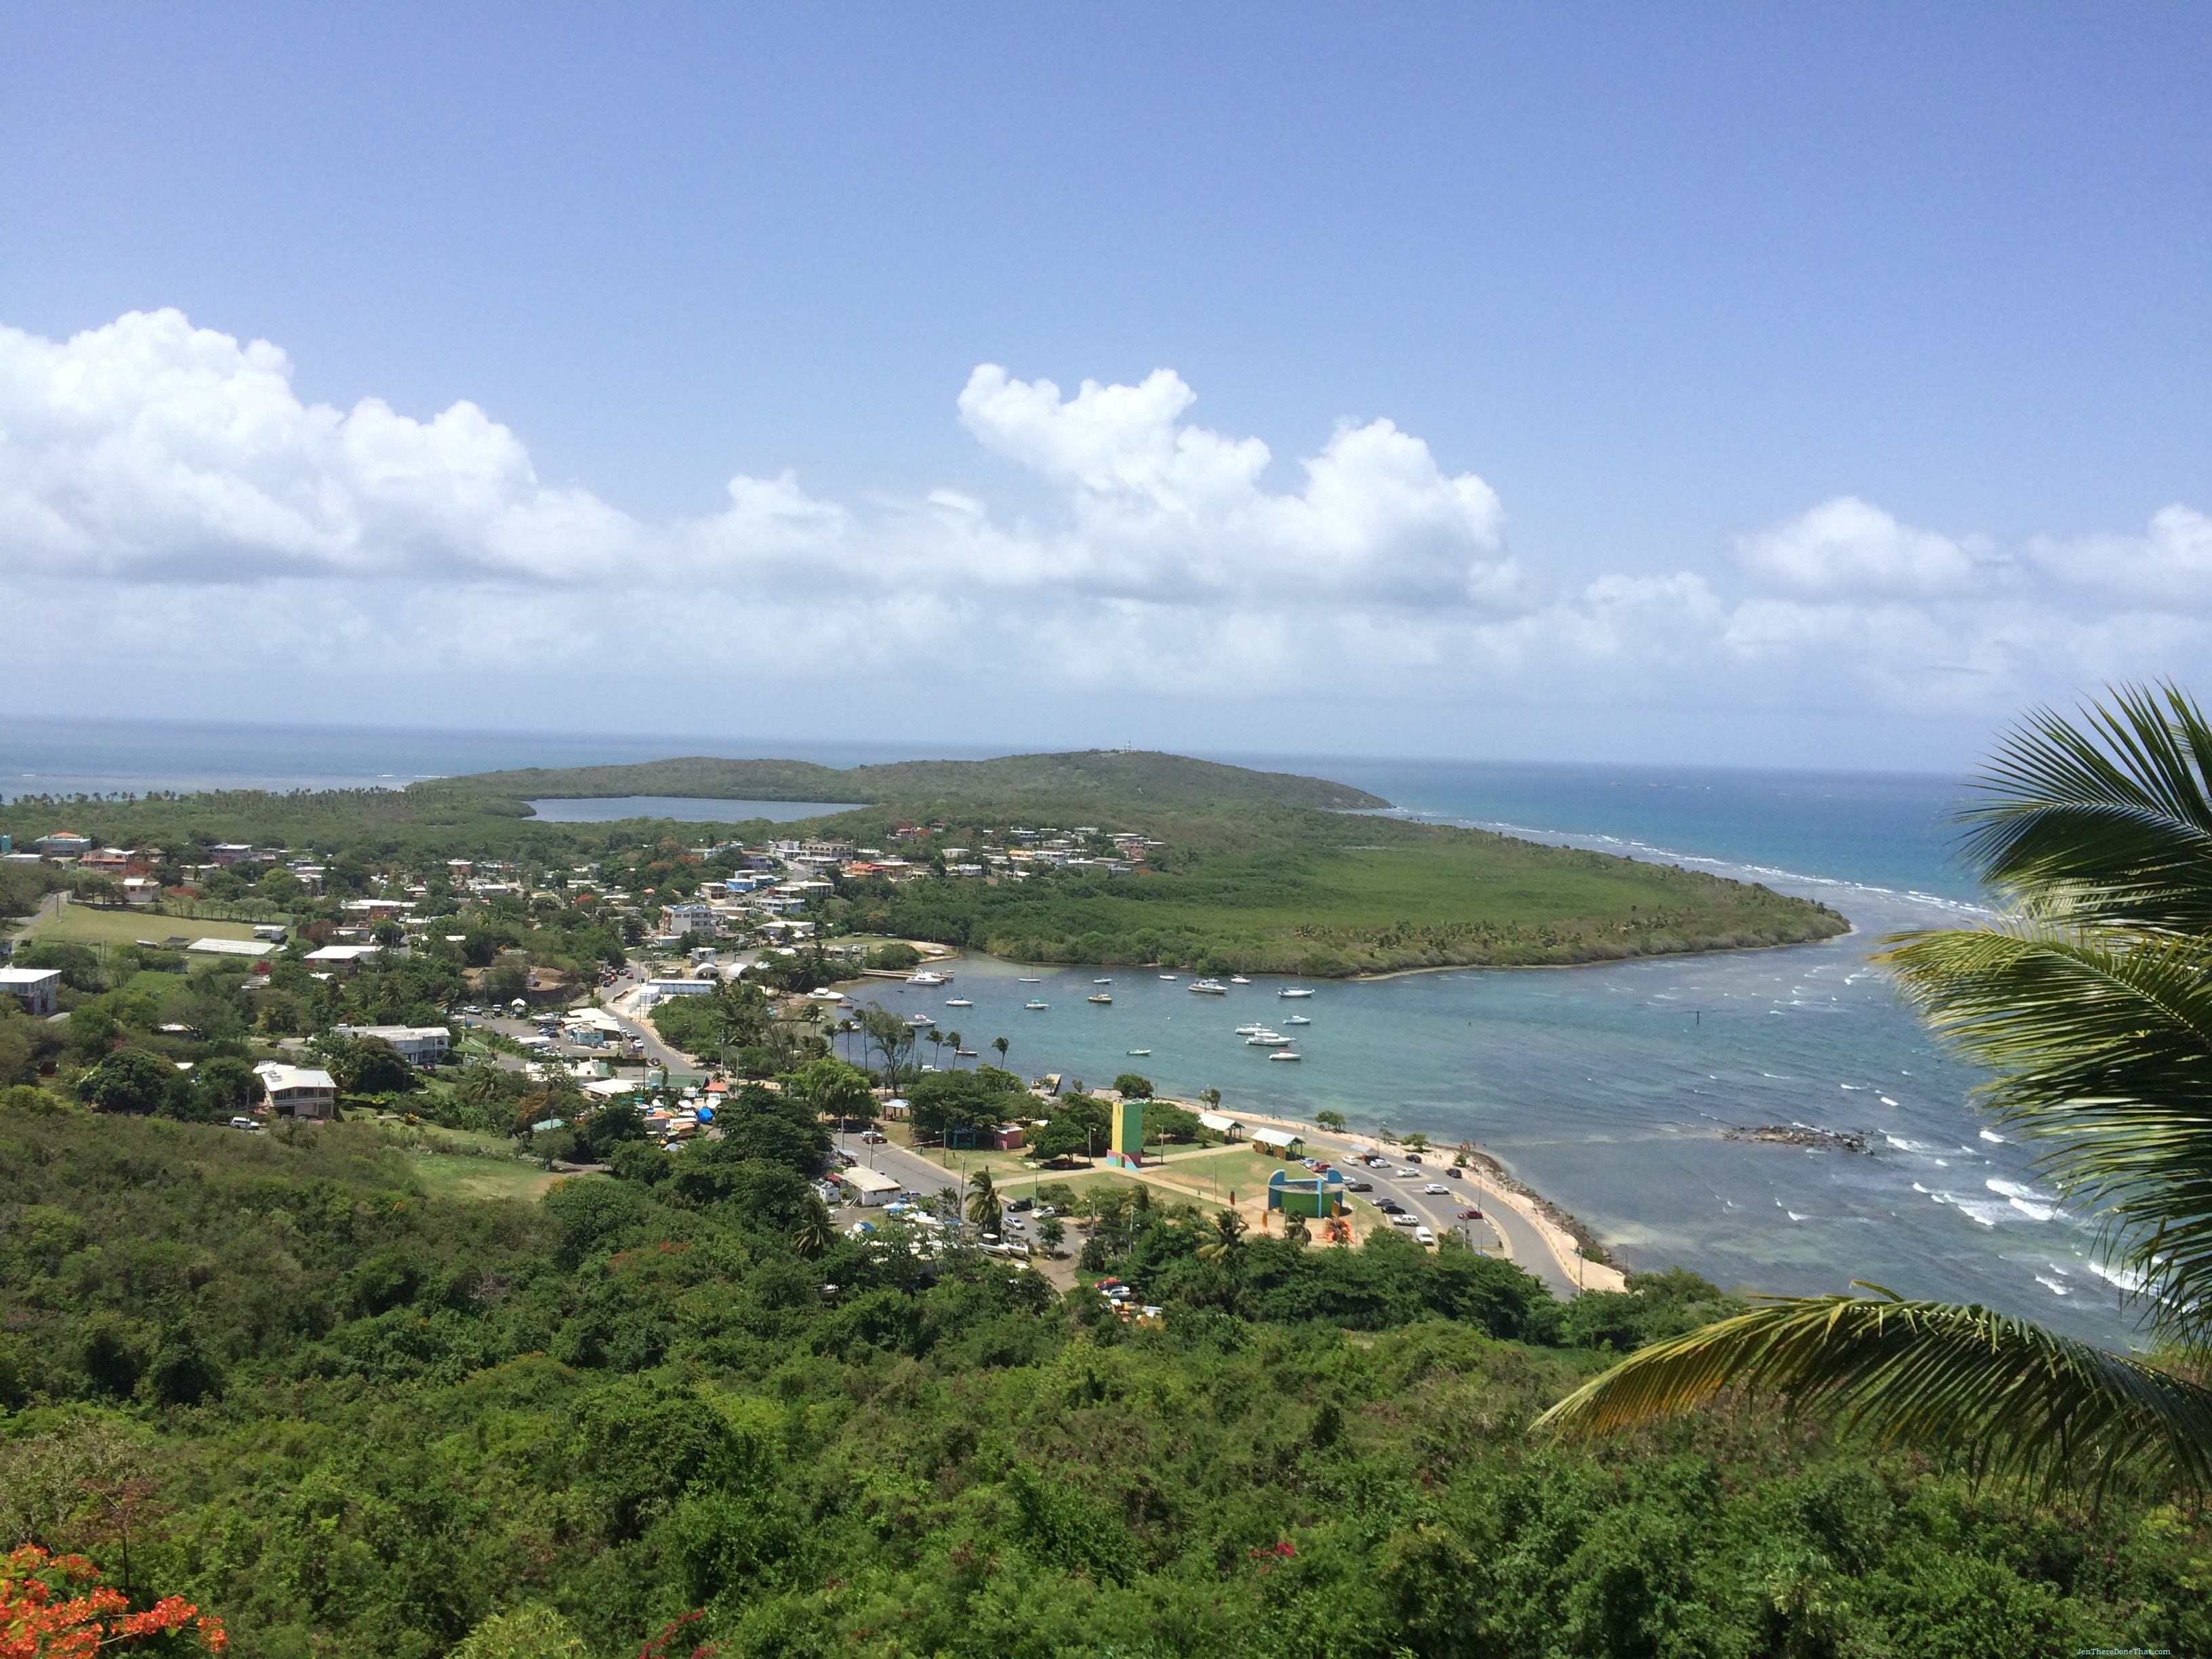 Fajardo Puerto Rico  City new picture : Fajardo, Puerto Rico View of the town center, bioluminescent bay, and ...